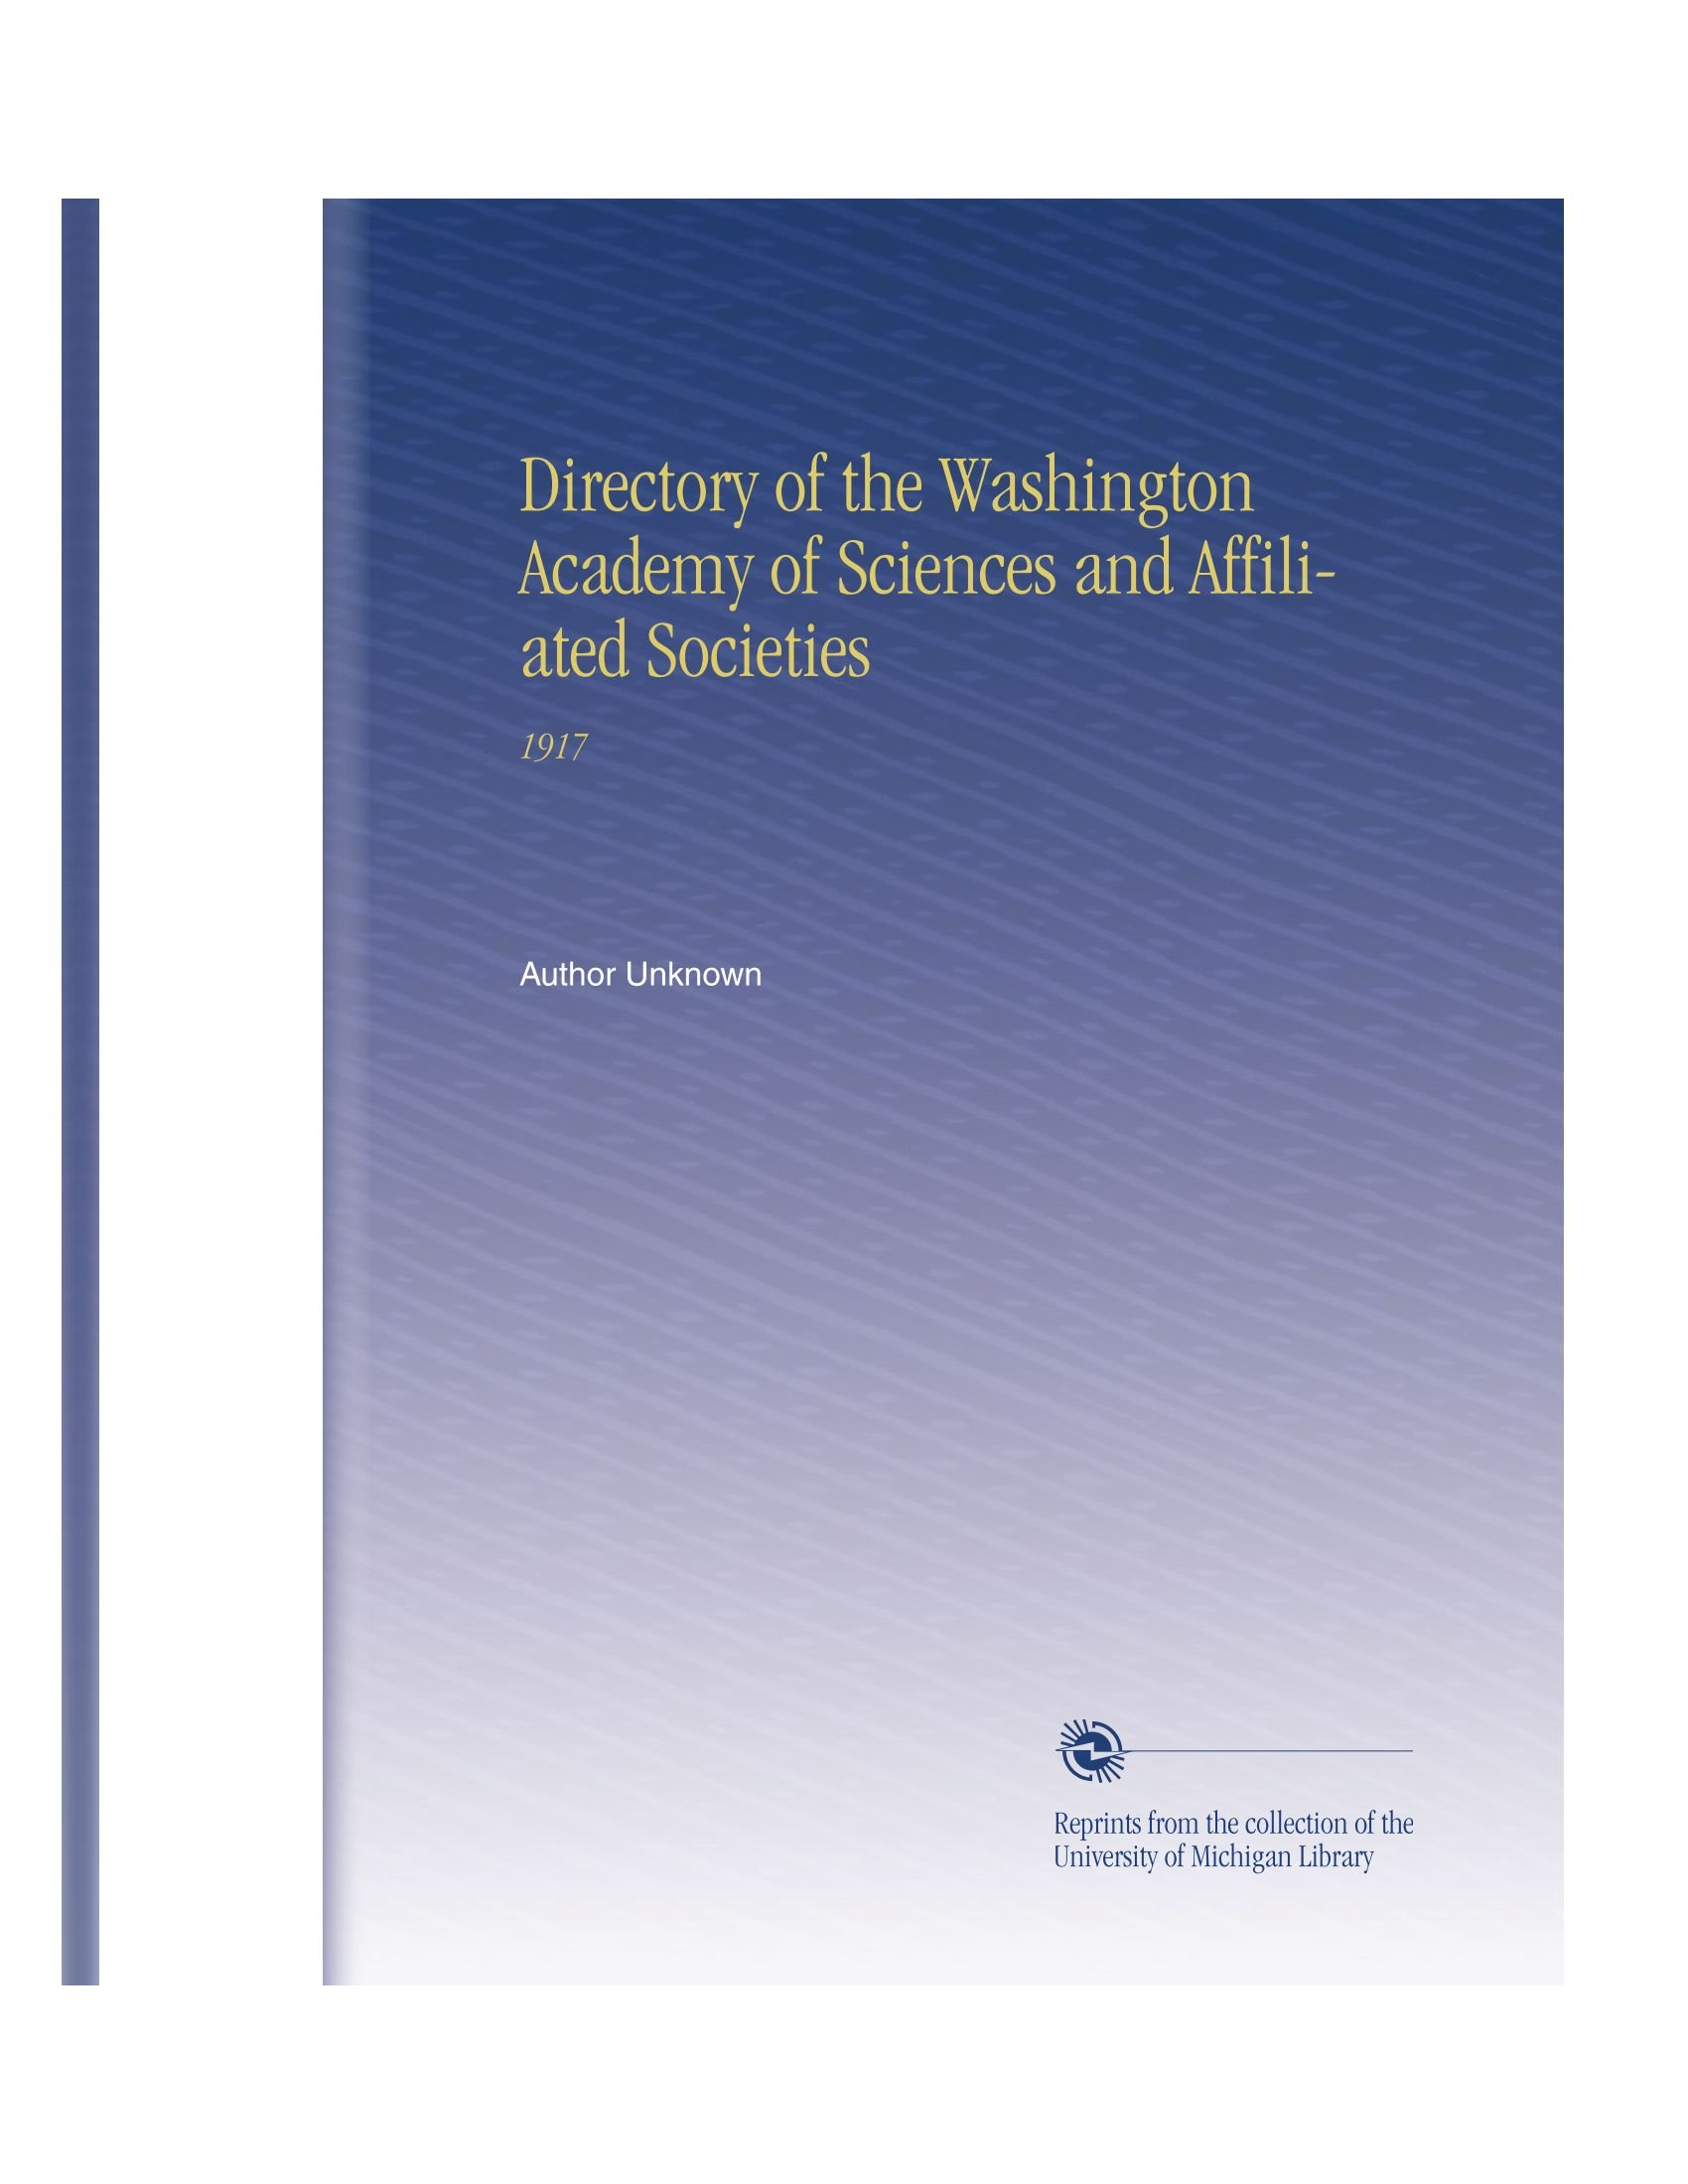 Download Directory of the Washington Academy of Sciences and Affiliated Societies: 1917 PDF